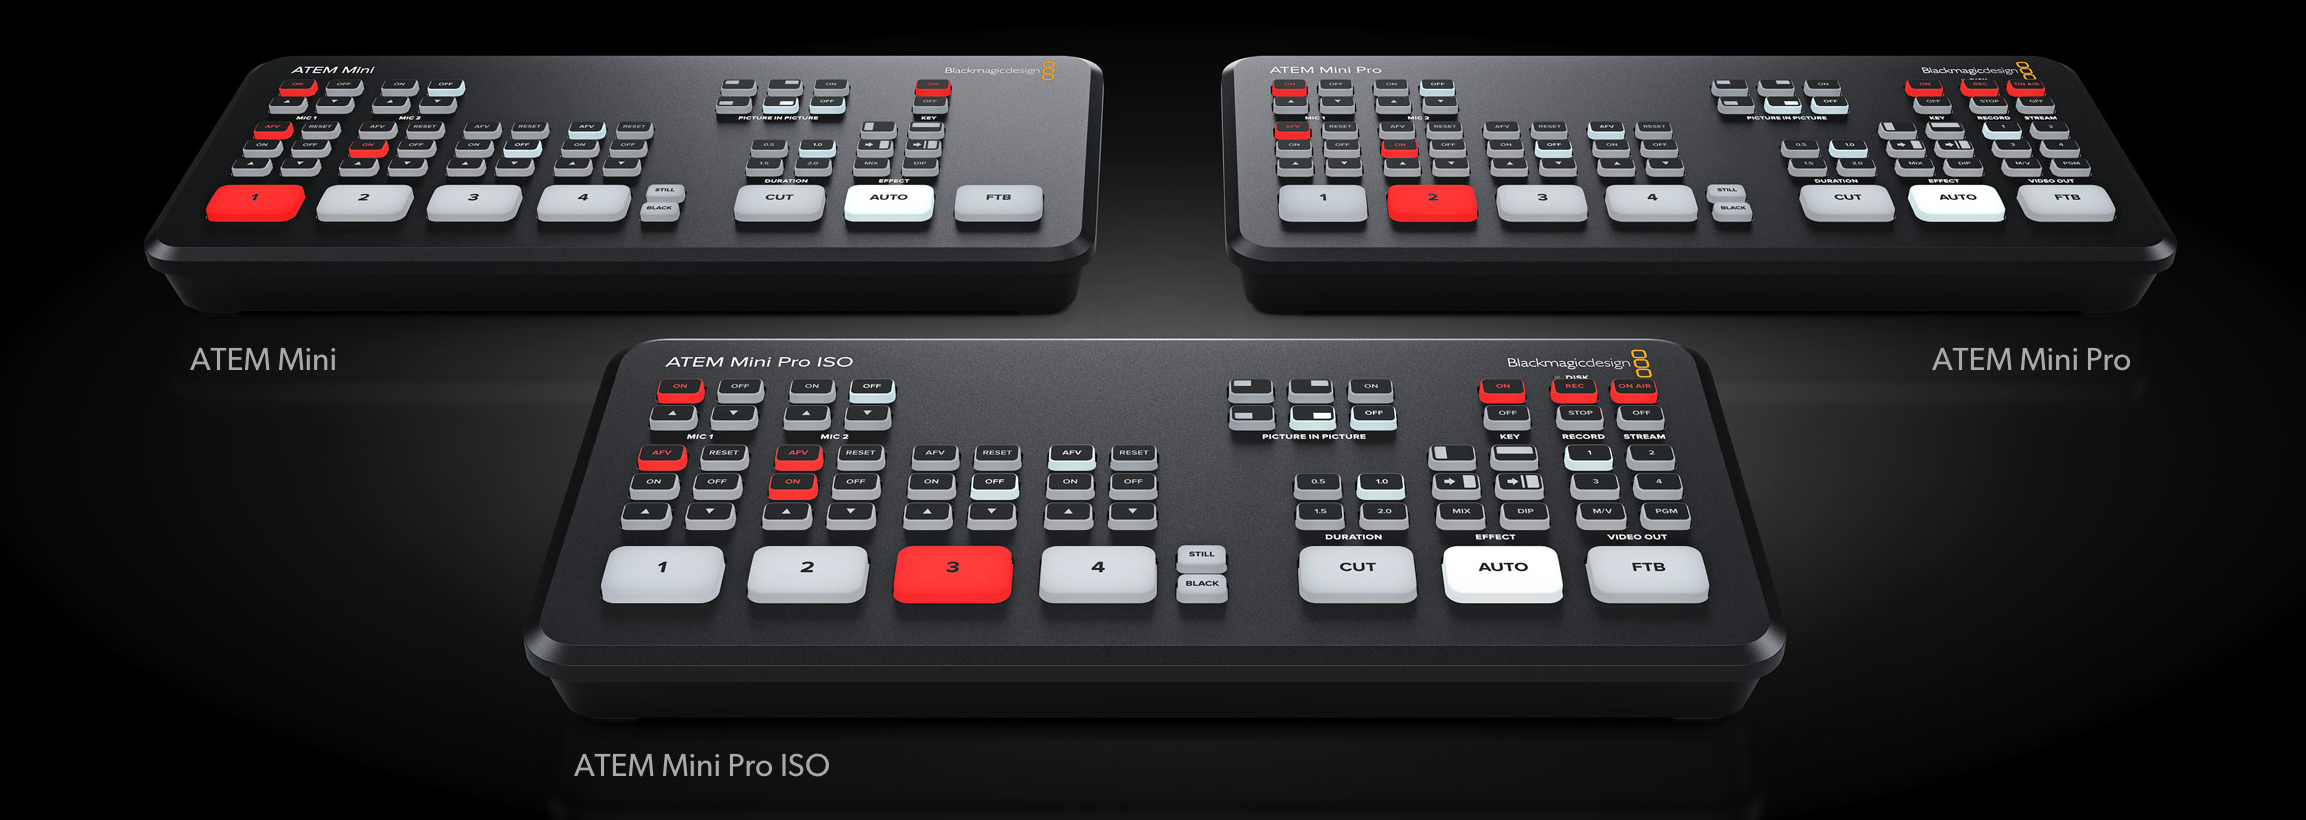 Blackmagic Design ATEM Mini models